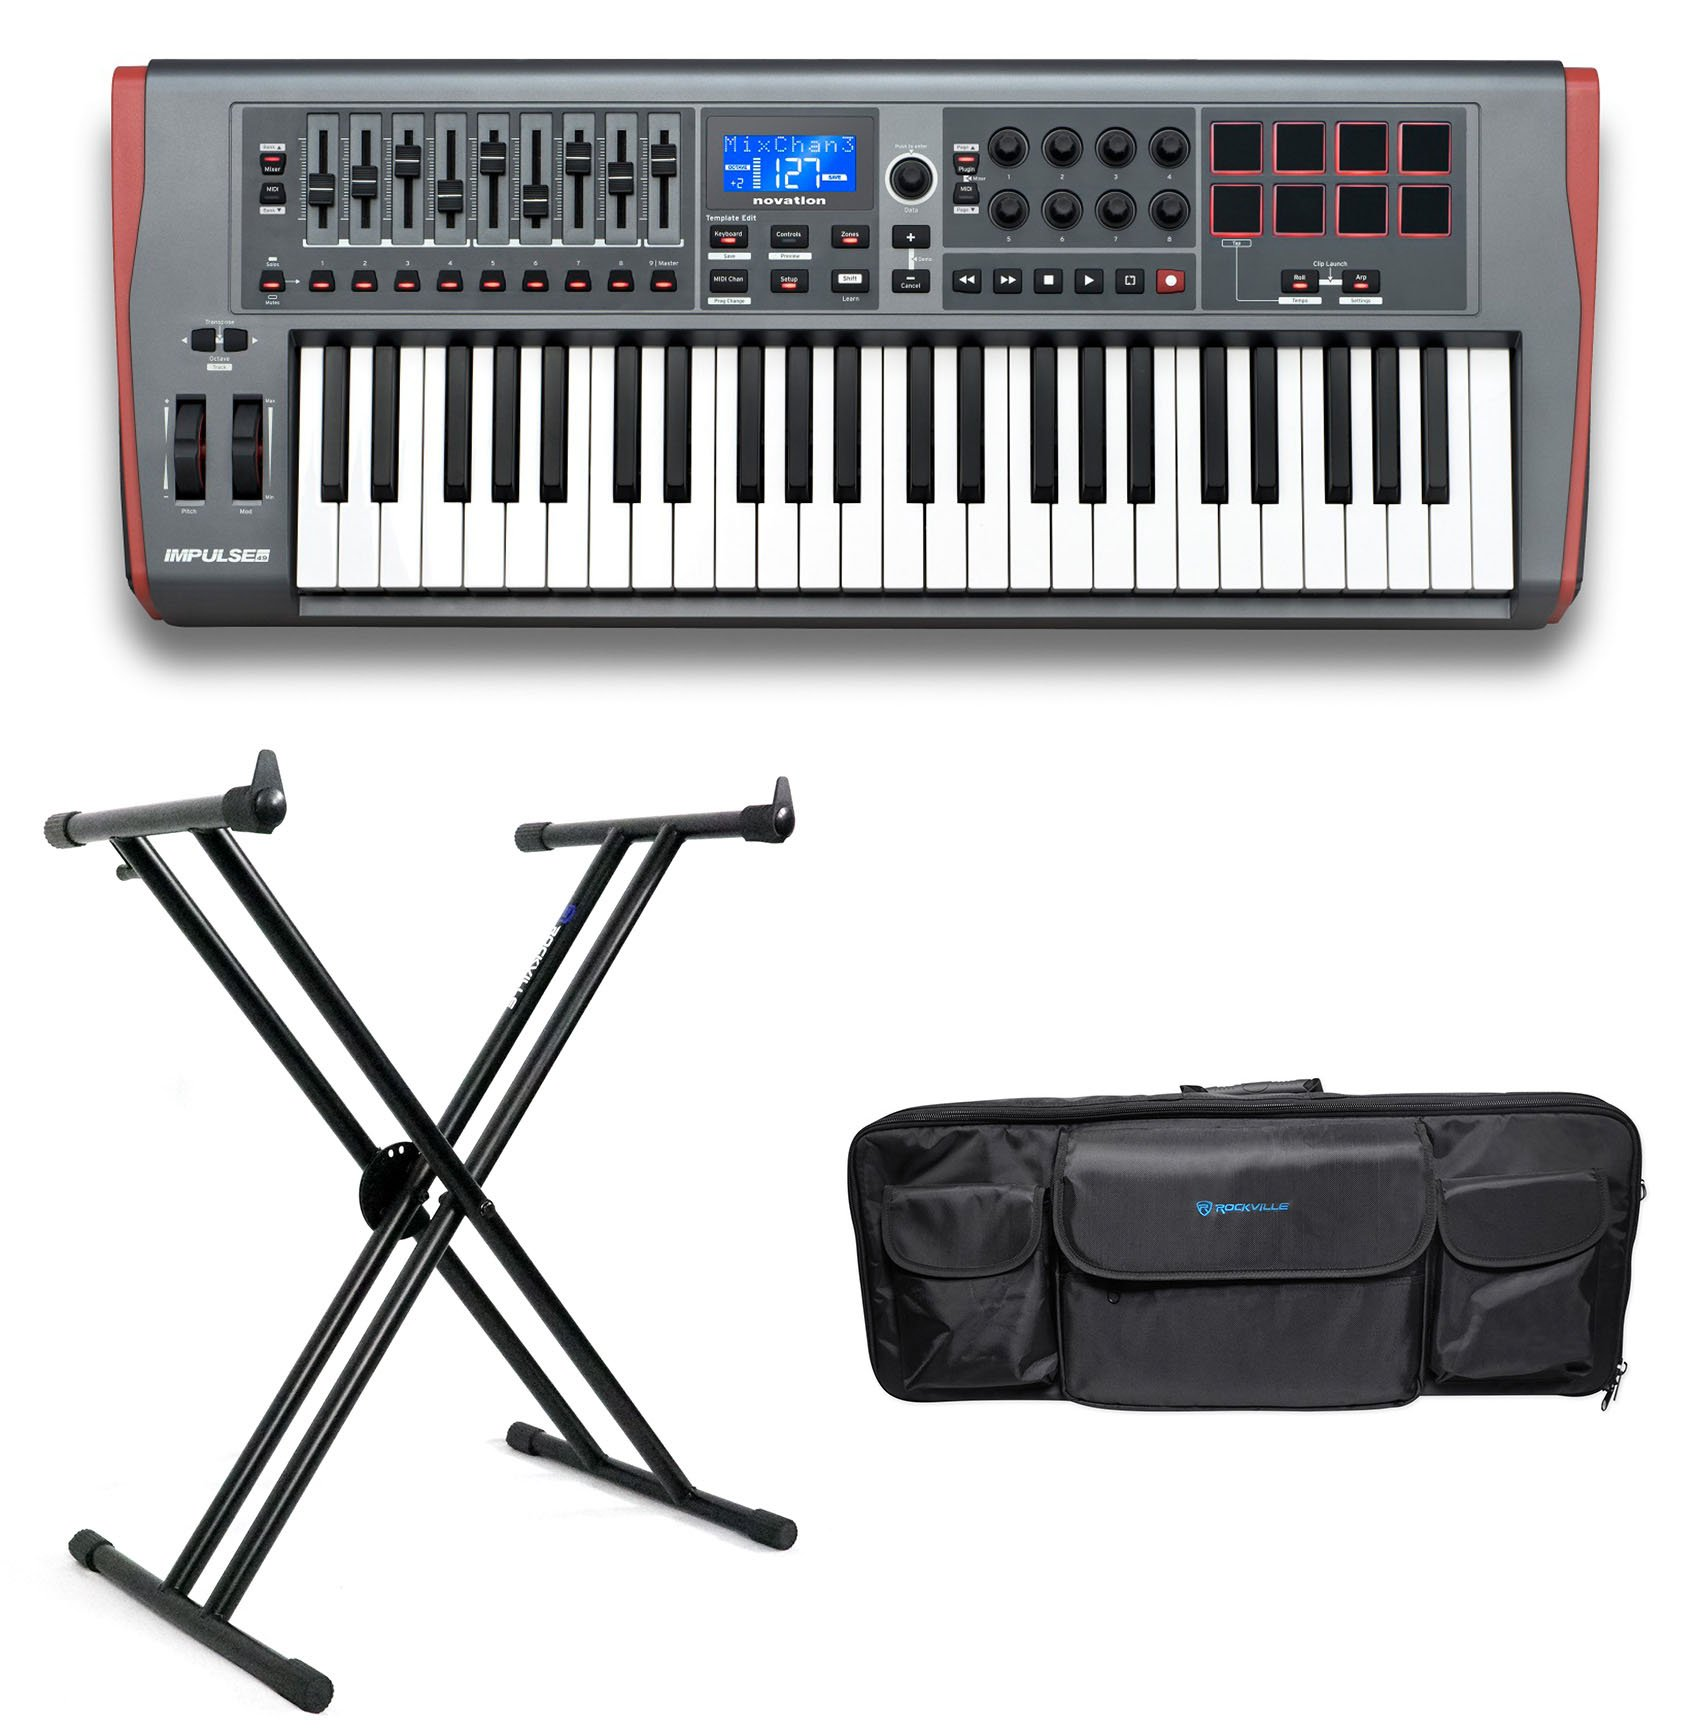 Novation IMPULSE 49-Key USB MIDI Keyboard Controller+Stand+Carry Bag by Novation